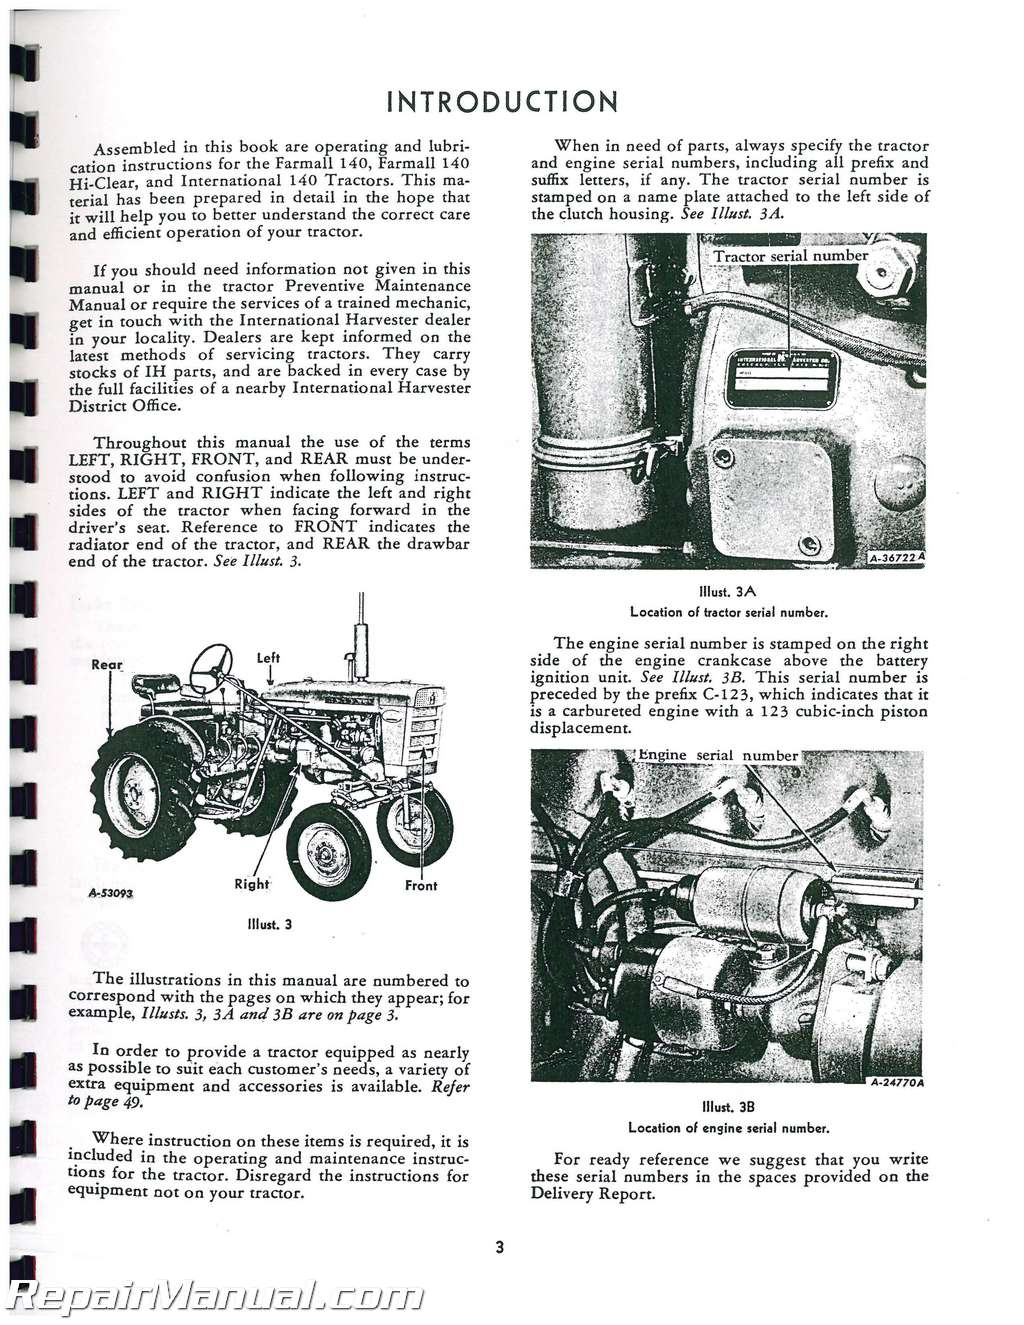 International Harvester Farmall 140 Operators Manual : JS